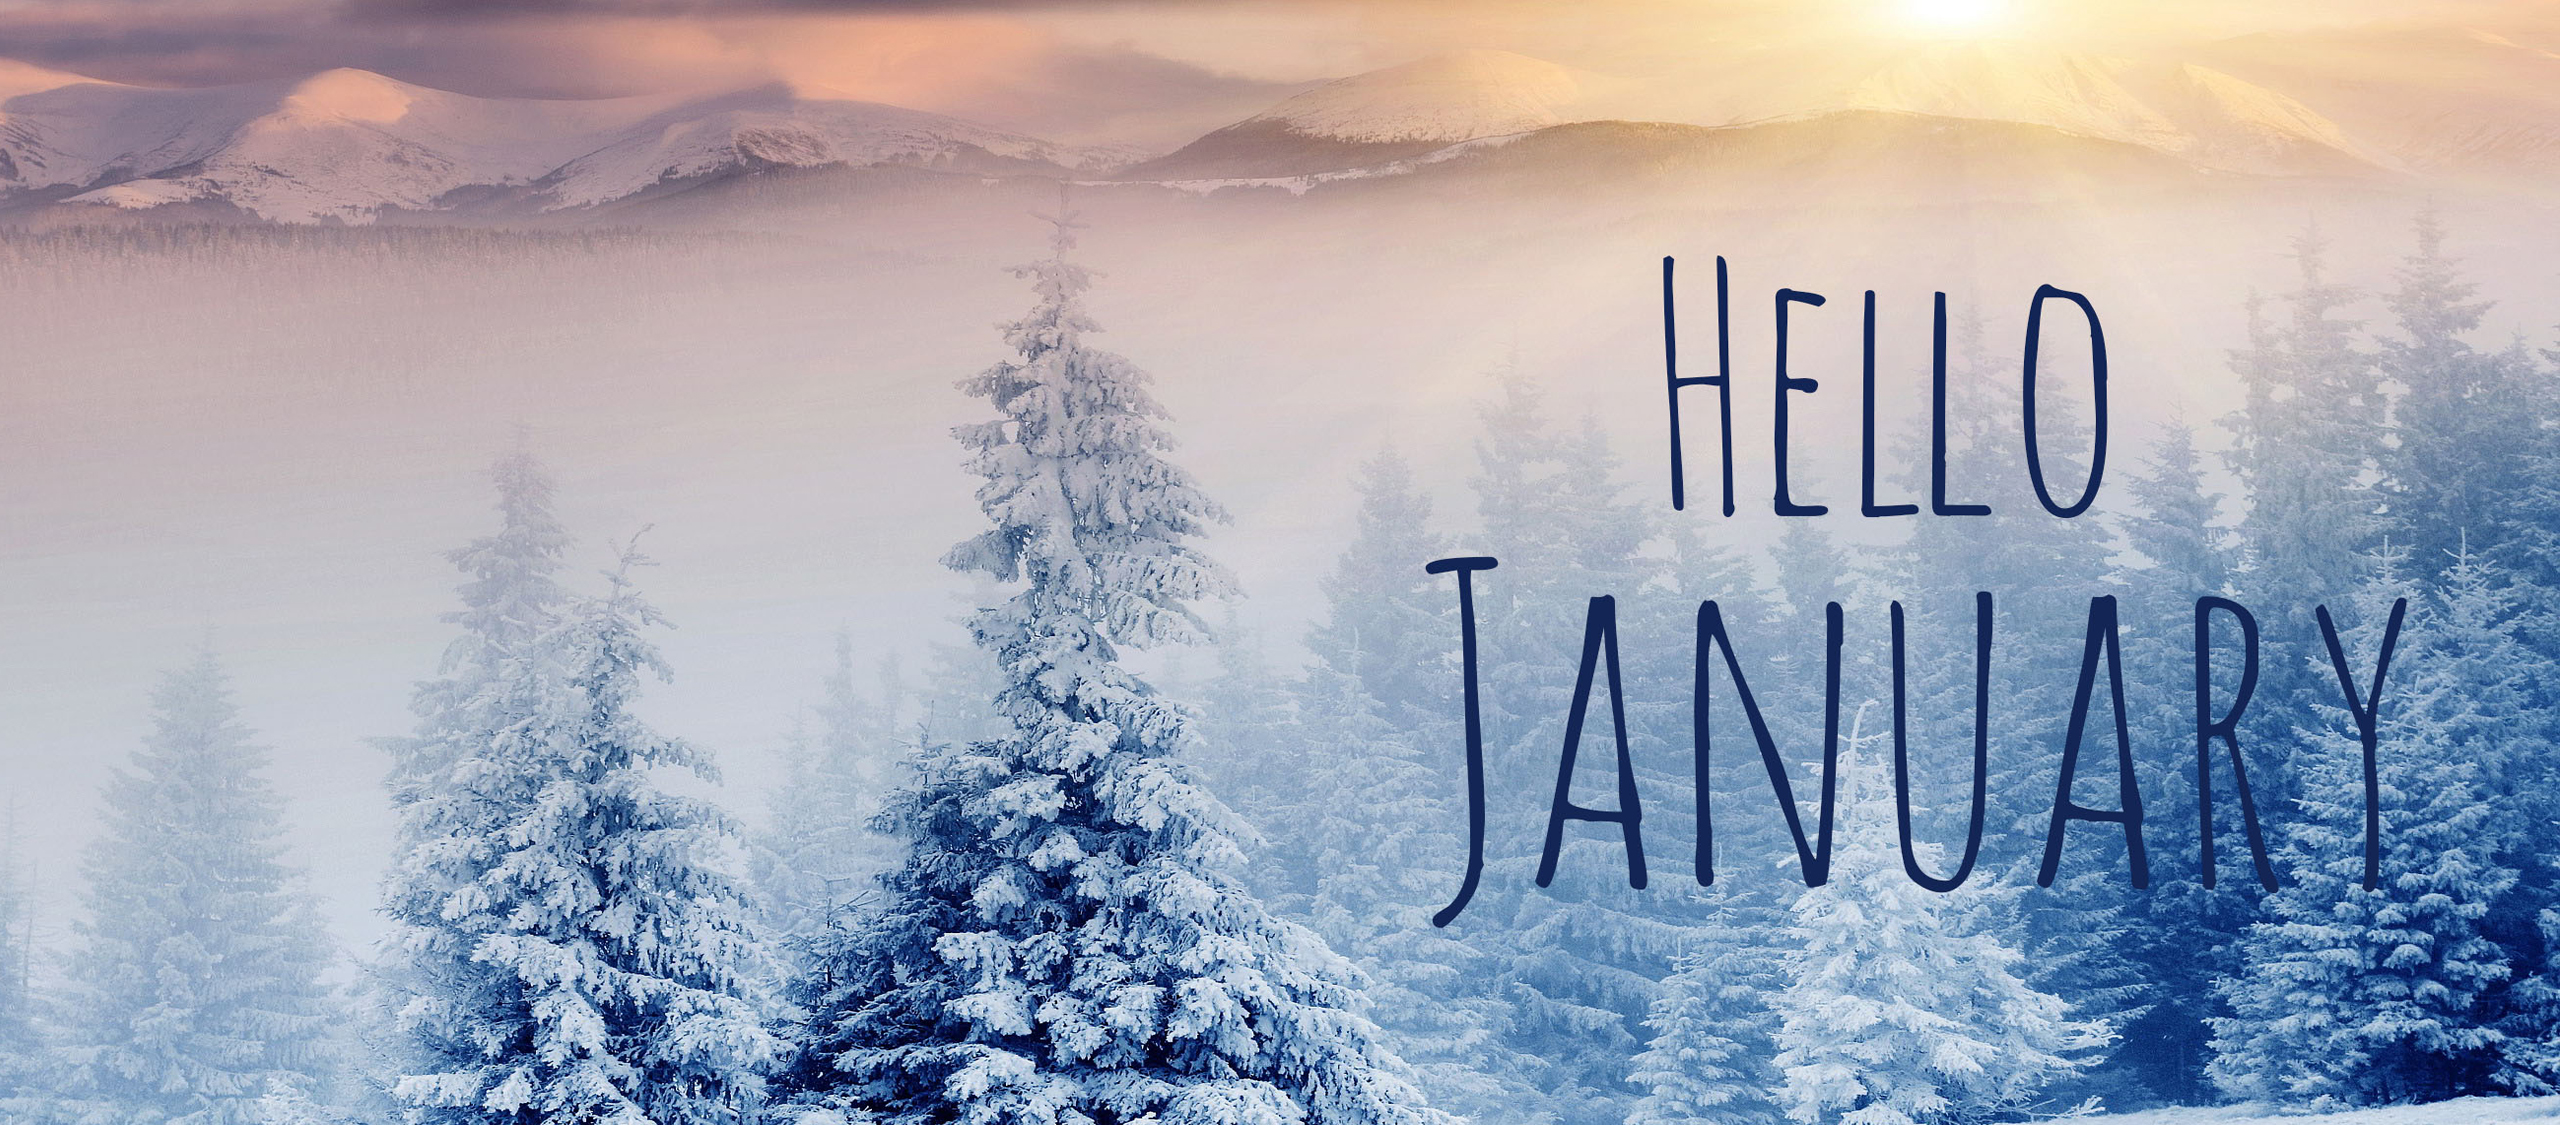 Hello January Images for Facebook